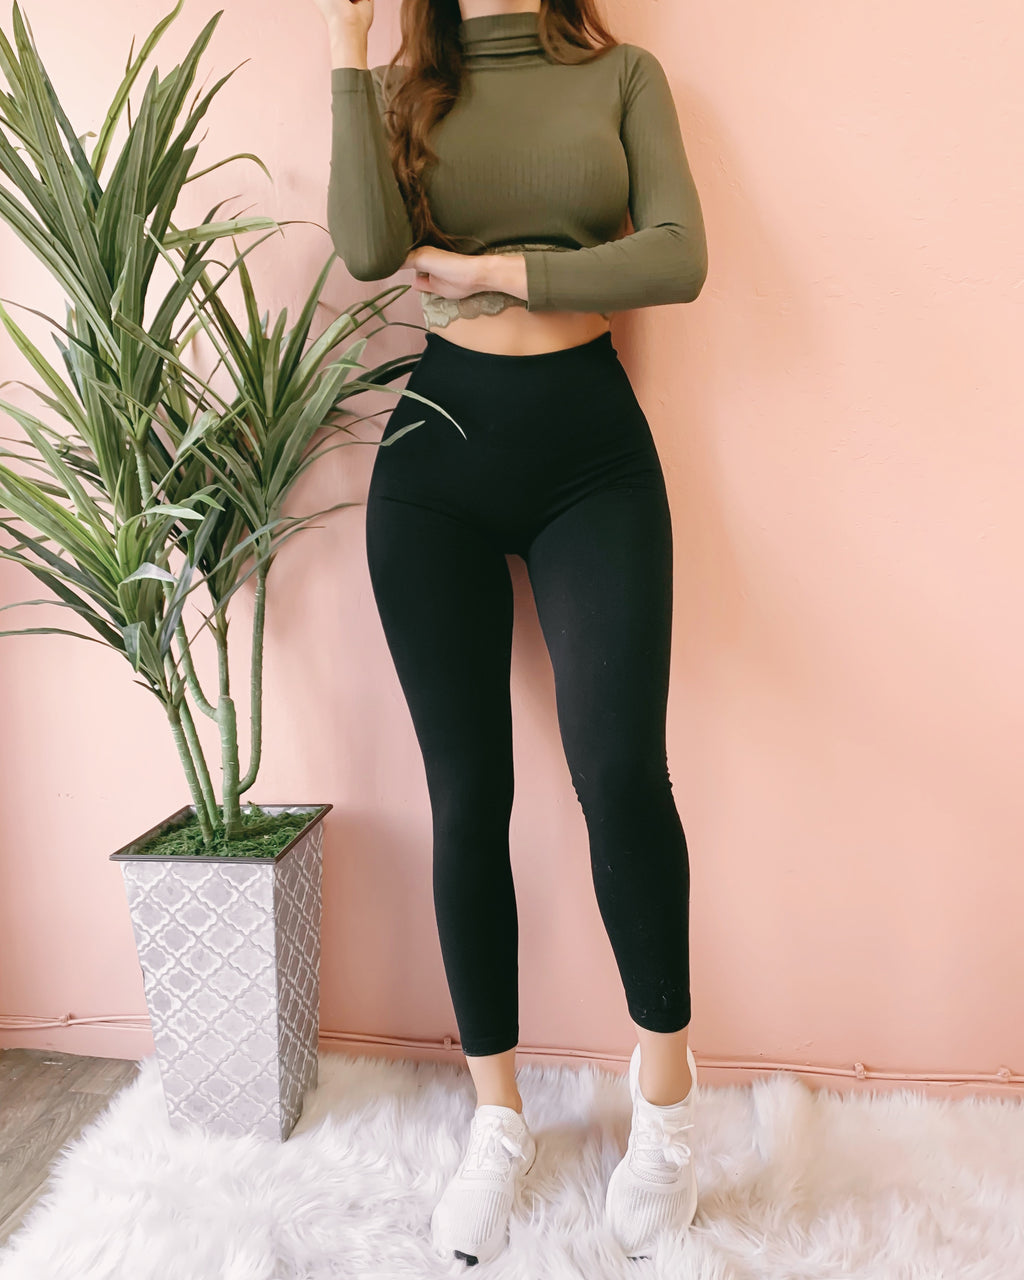 RESTOCKED! FIREPLACE FLEECE HIGH WAIST LEGGINGS